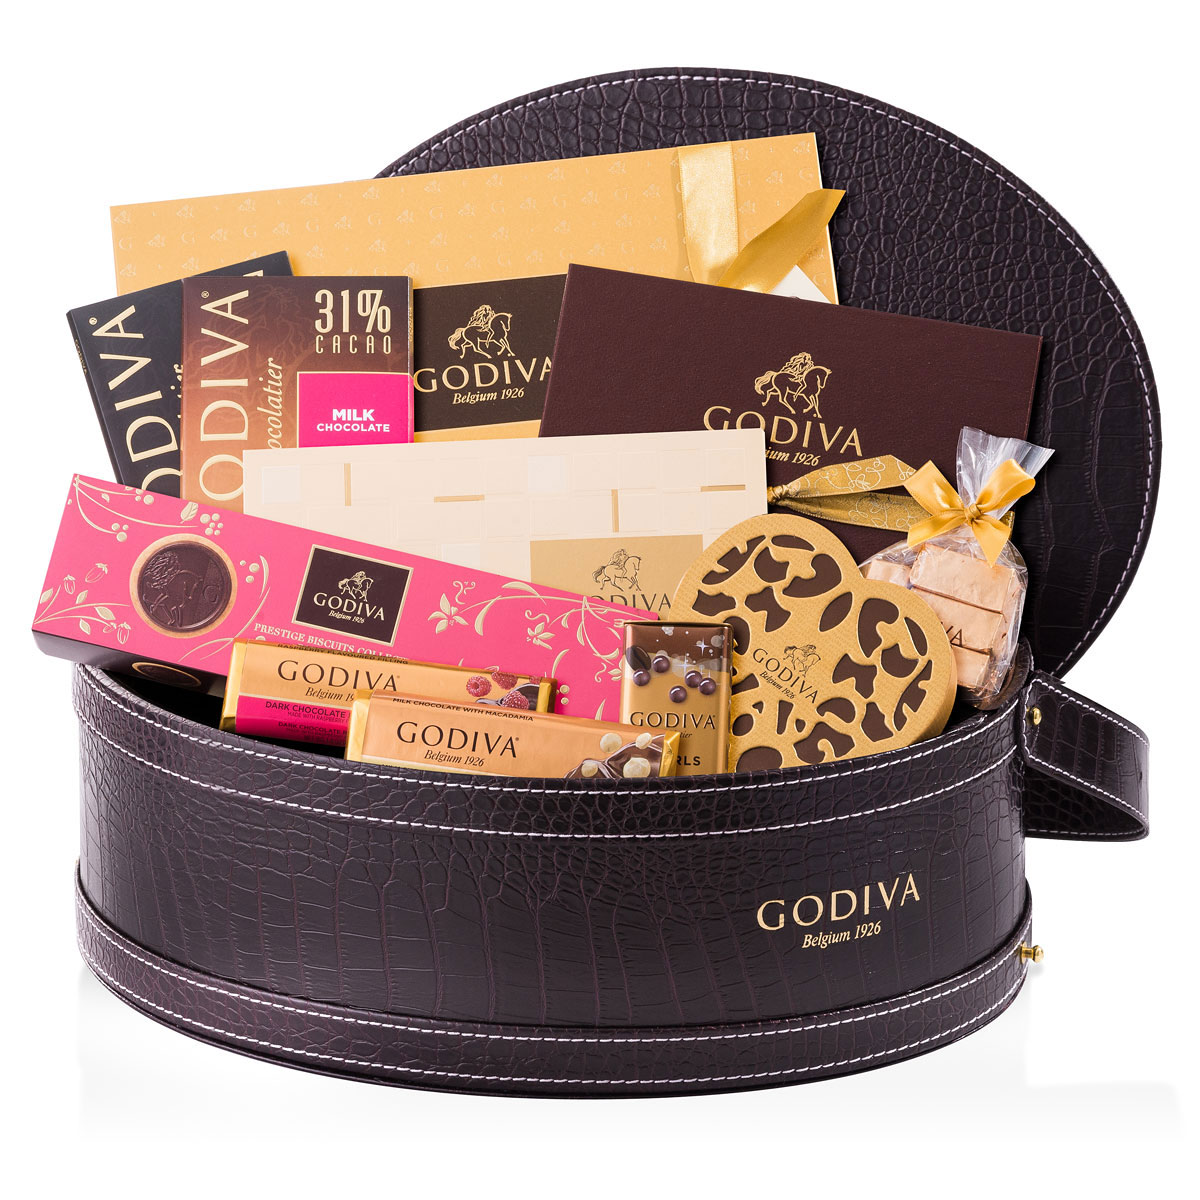 Godiva connoisseur chocolate gift basket delivery in europe godiva connoisseur chocolate gift basket 01 negle Choice Image